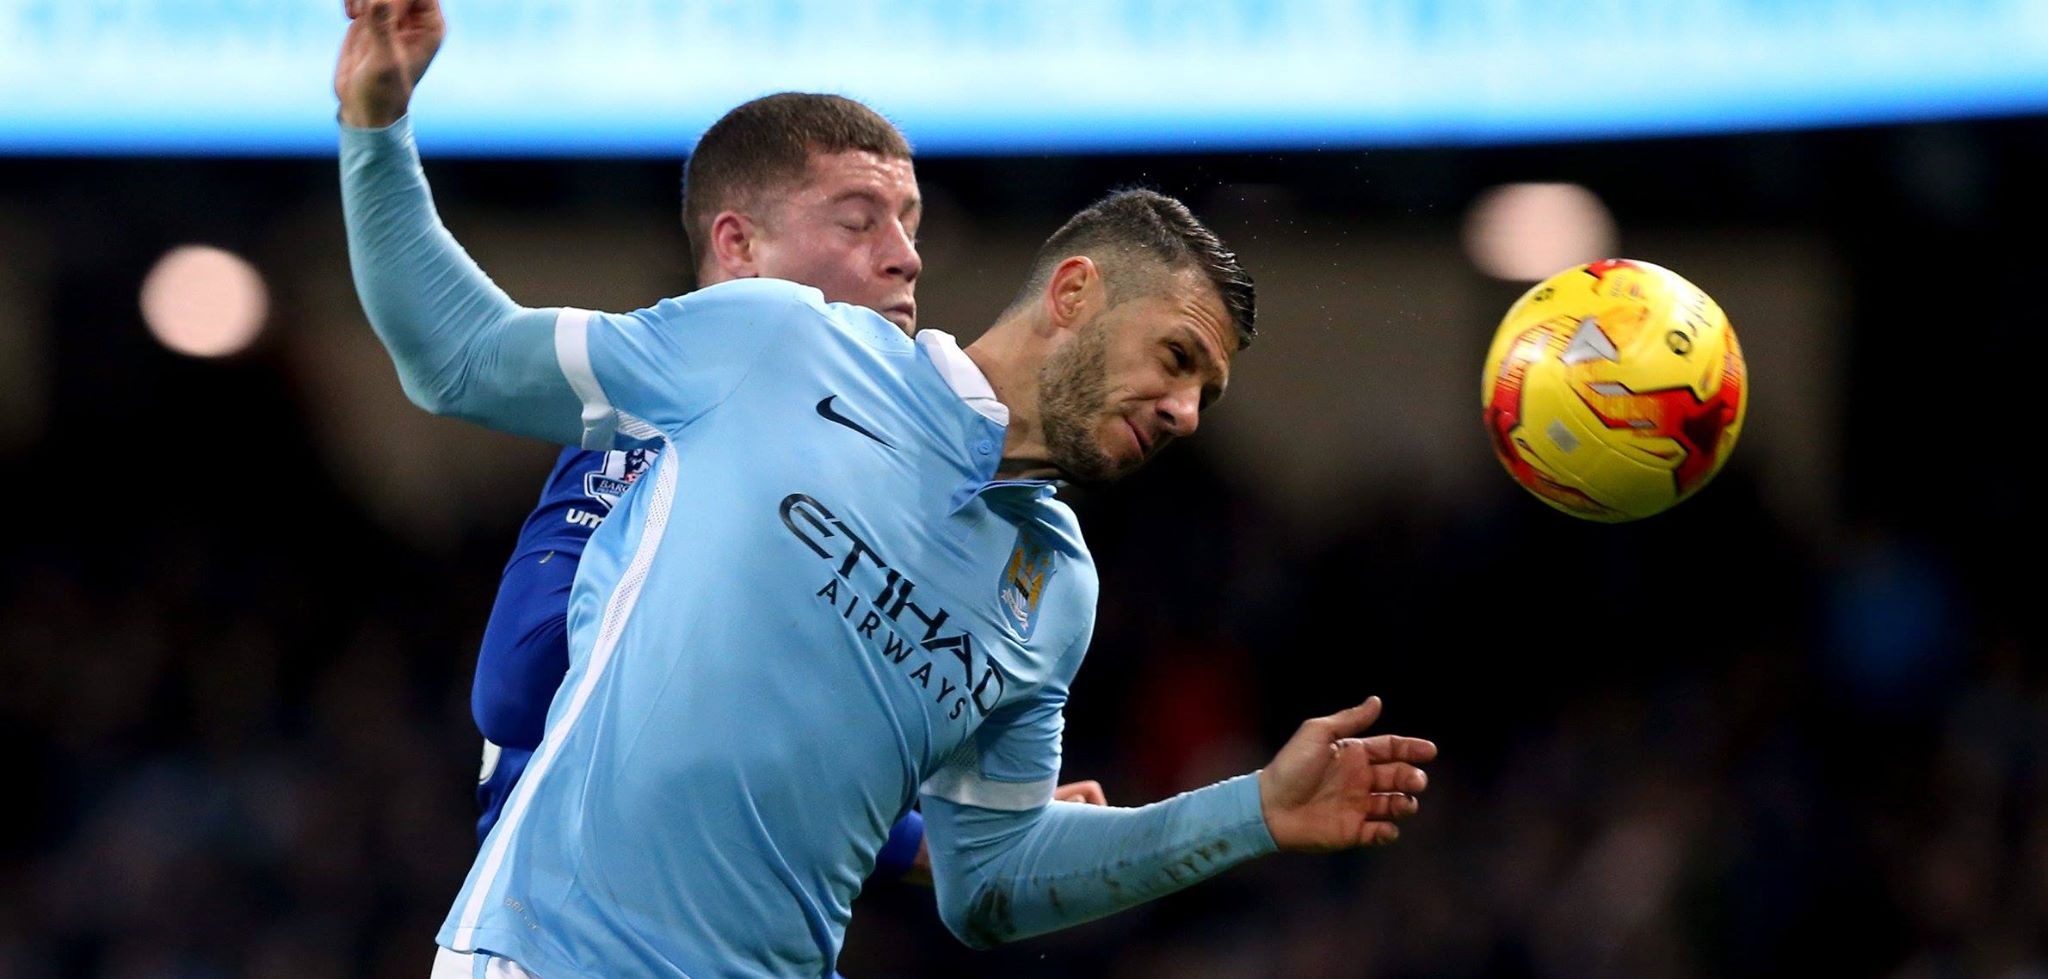 Off the pace - A favourite with the fans, Martin Demichelis has had a troubled third season at the Etihad.